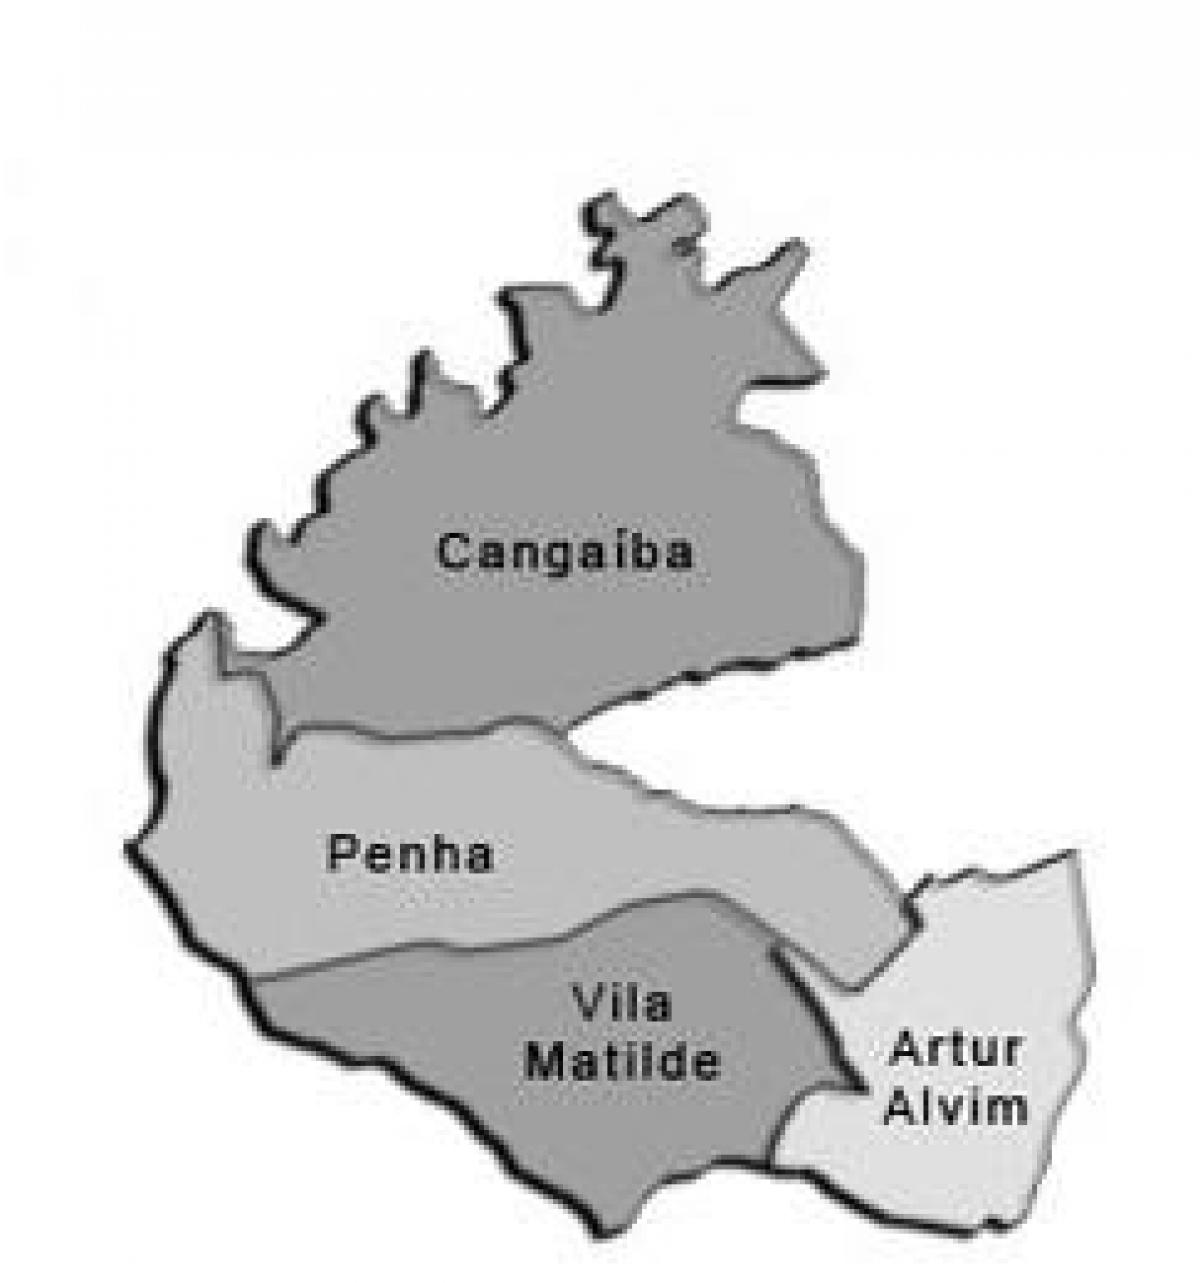 Map of Penha sub-prefecture